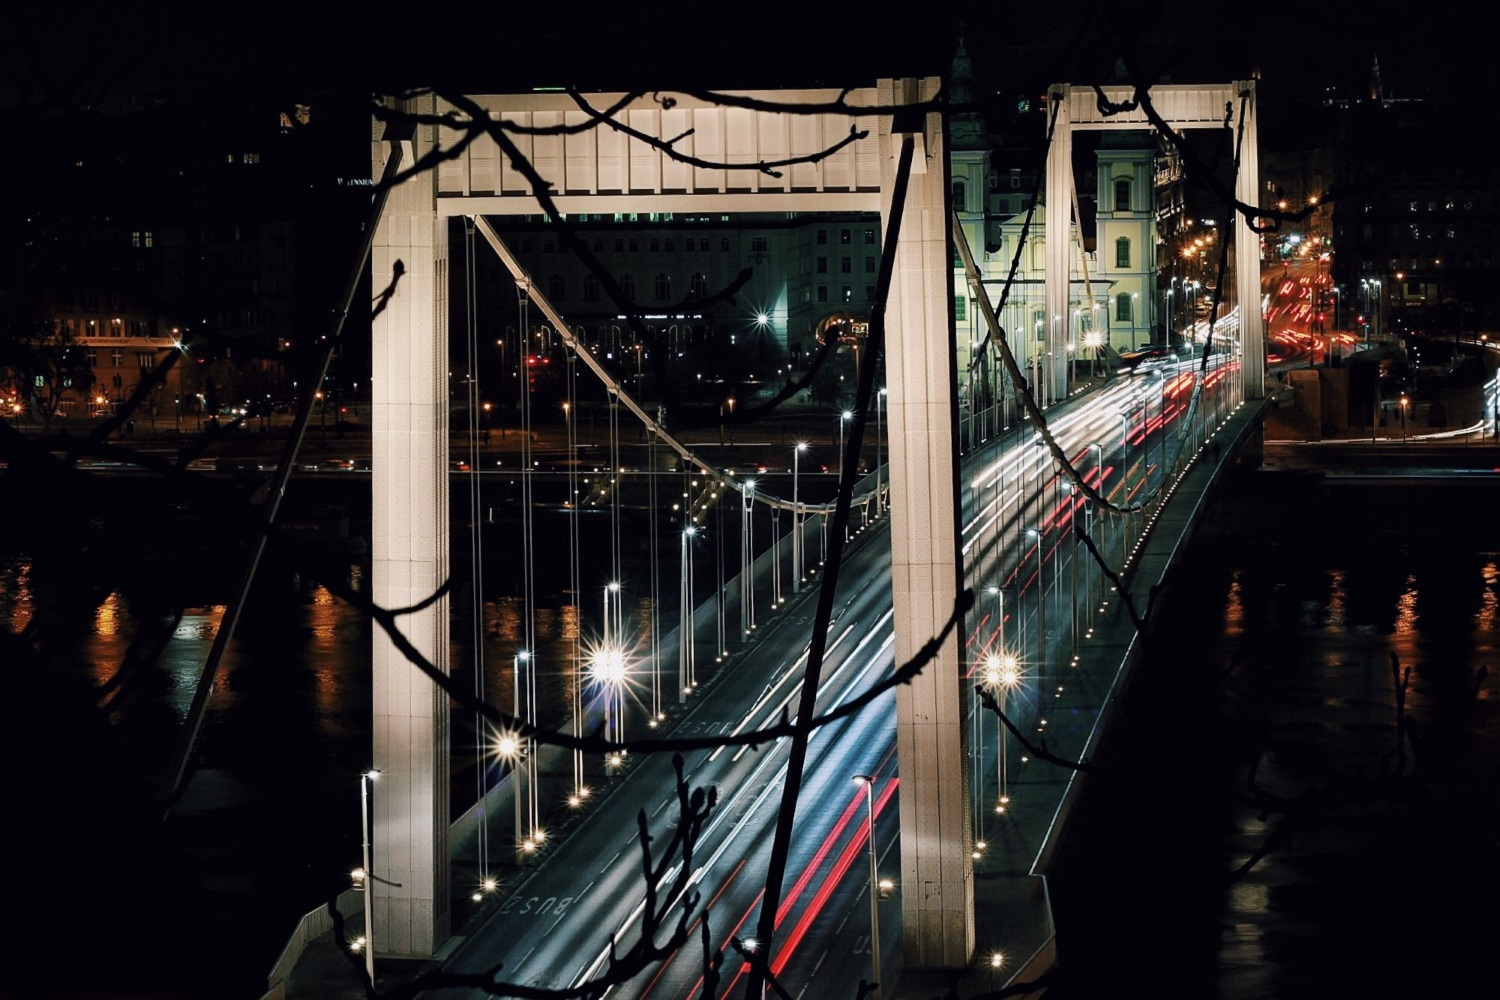 lifesthayle-budapest-elisabeth-brigde-at-night.jpg